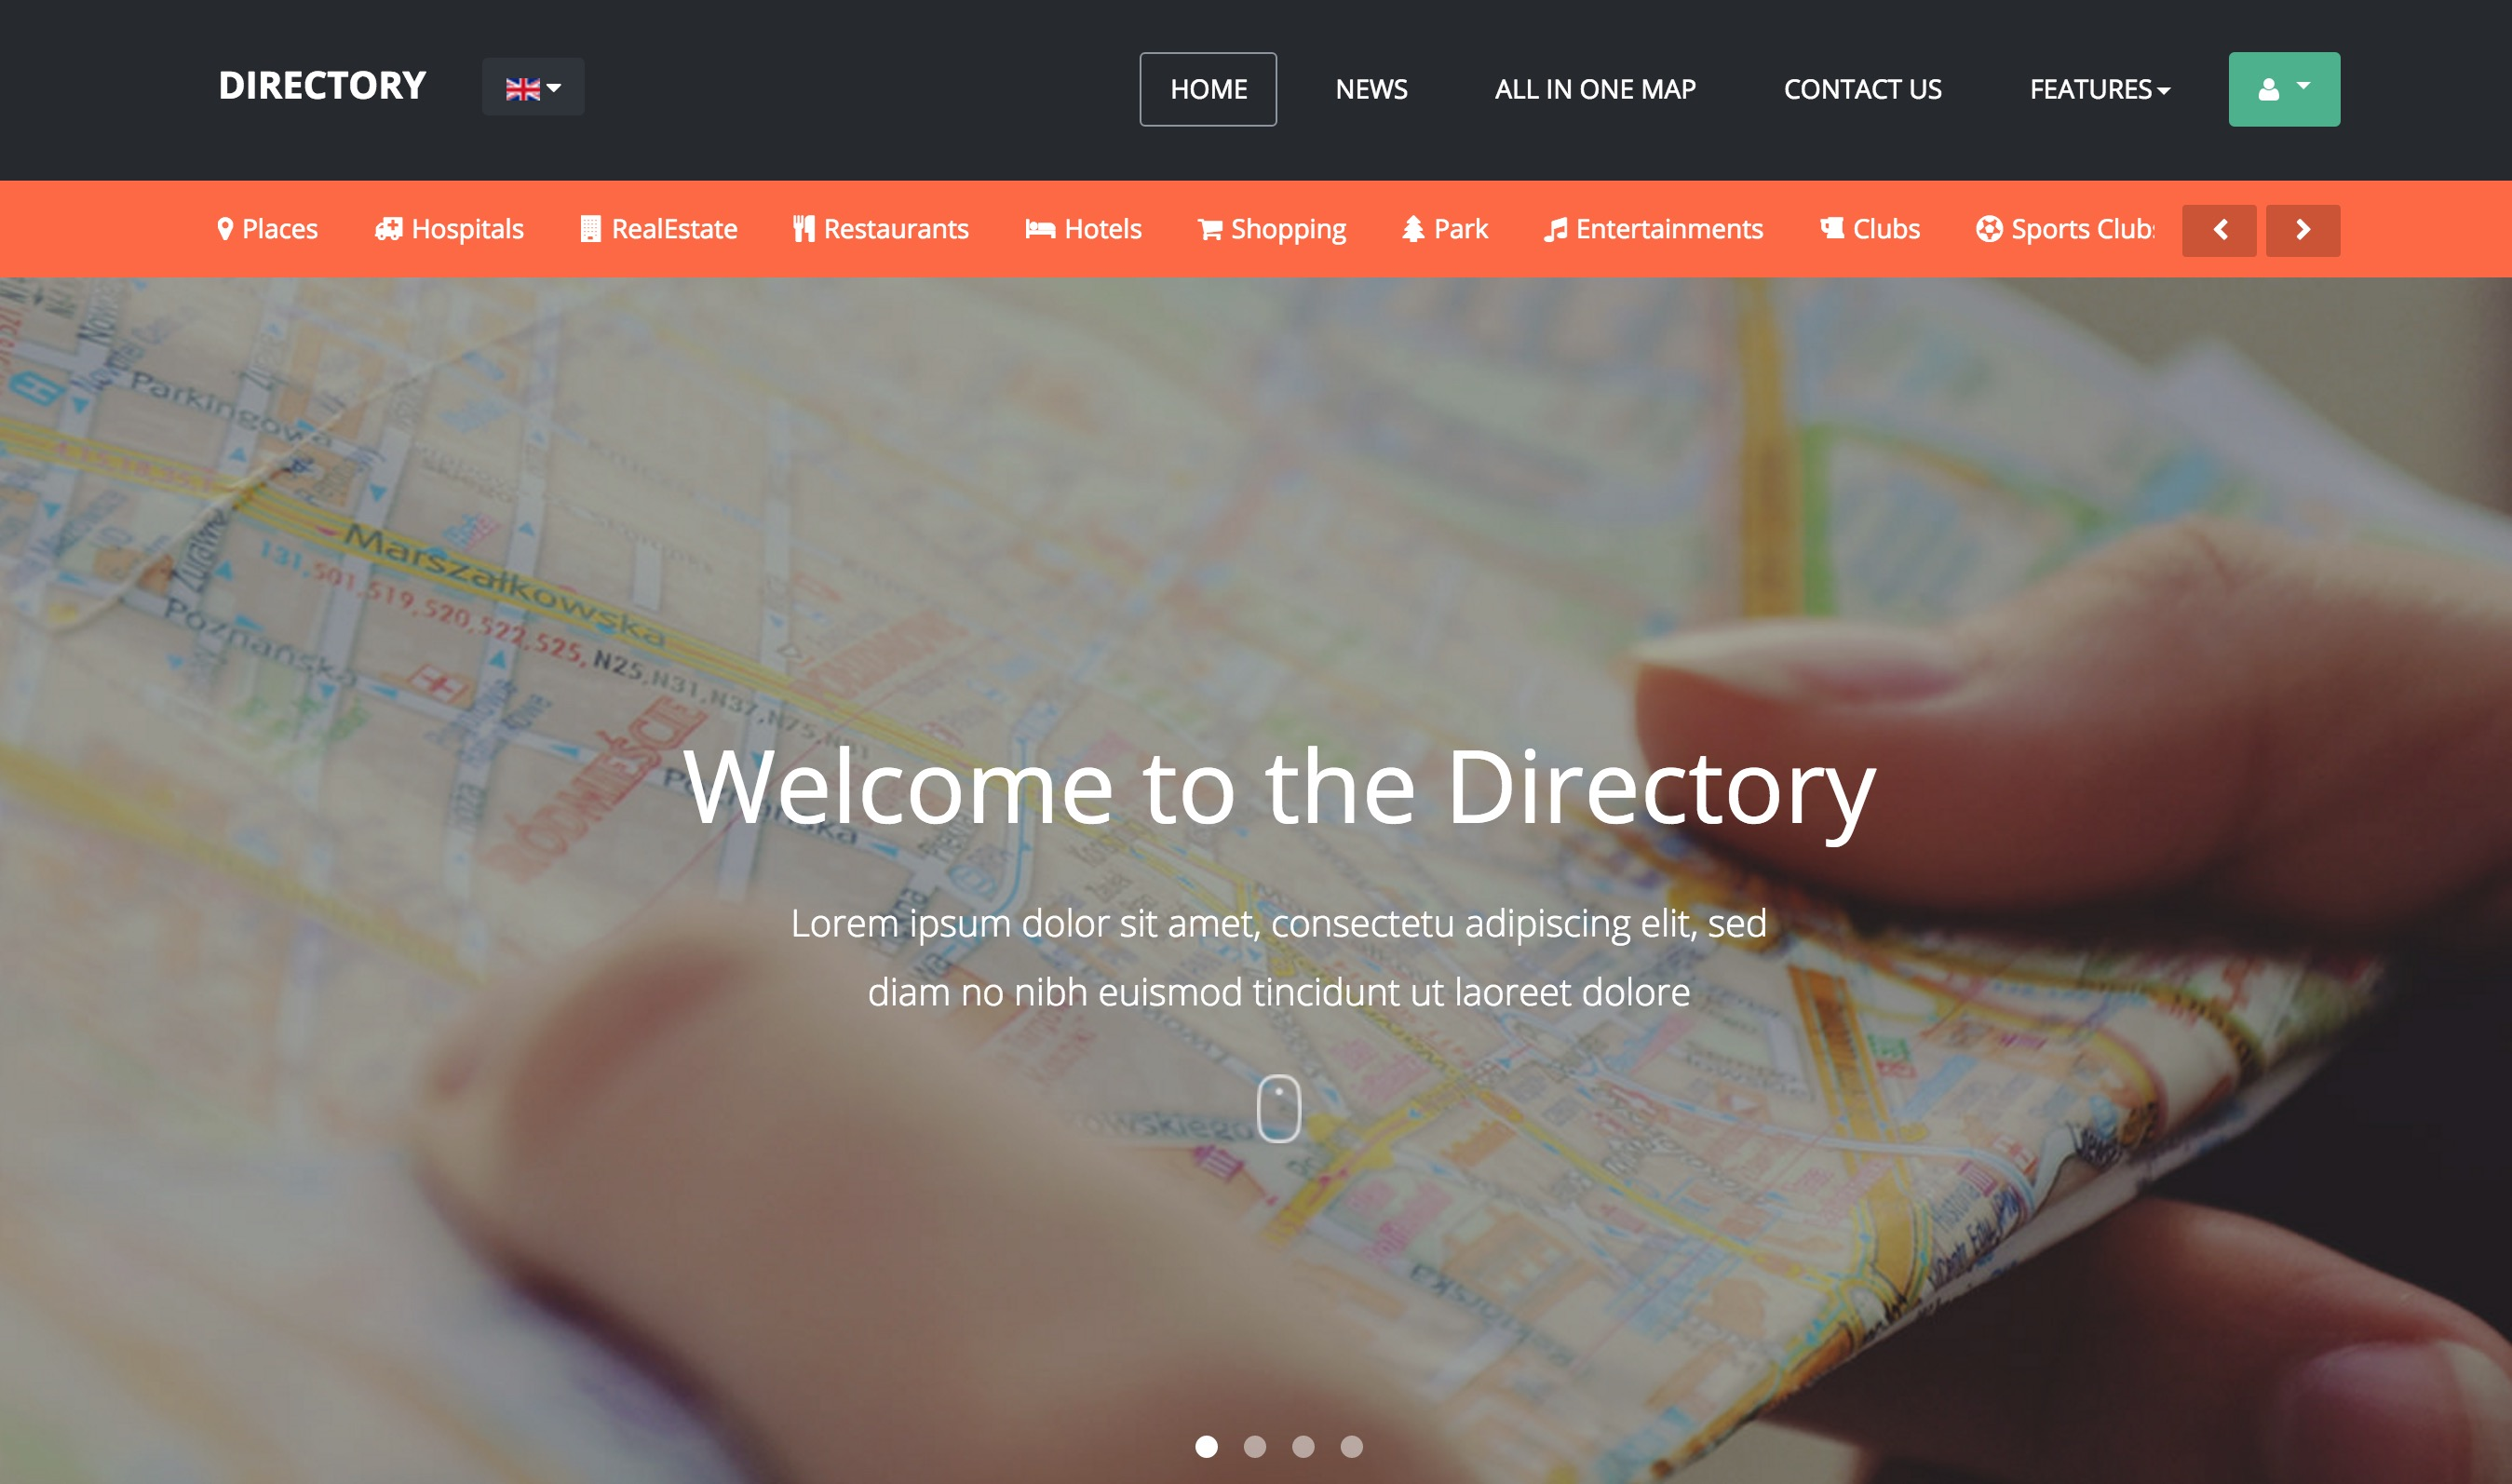 The JoomlArt Directory Theme